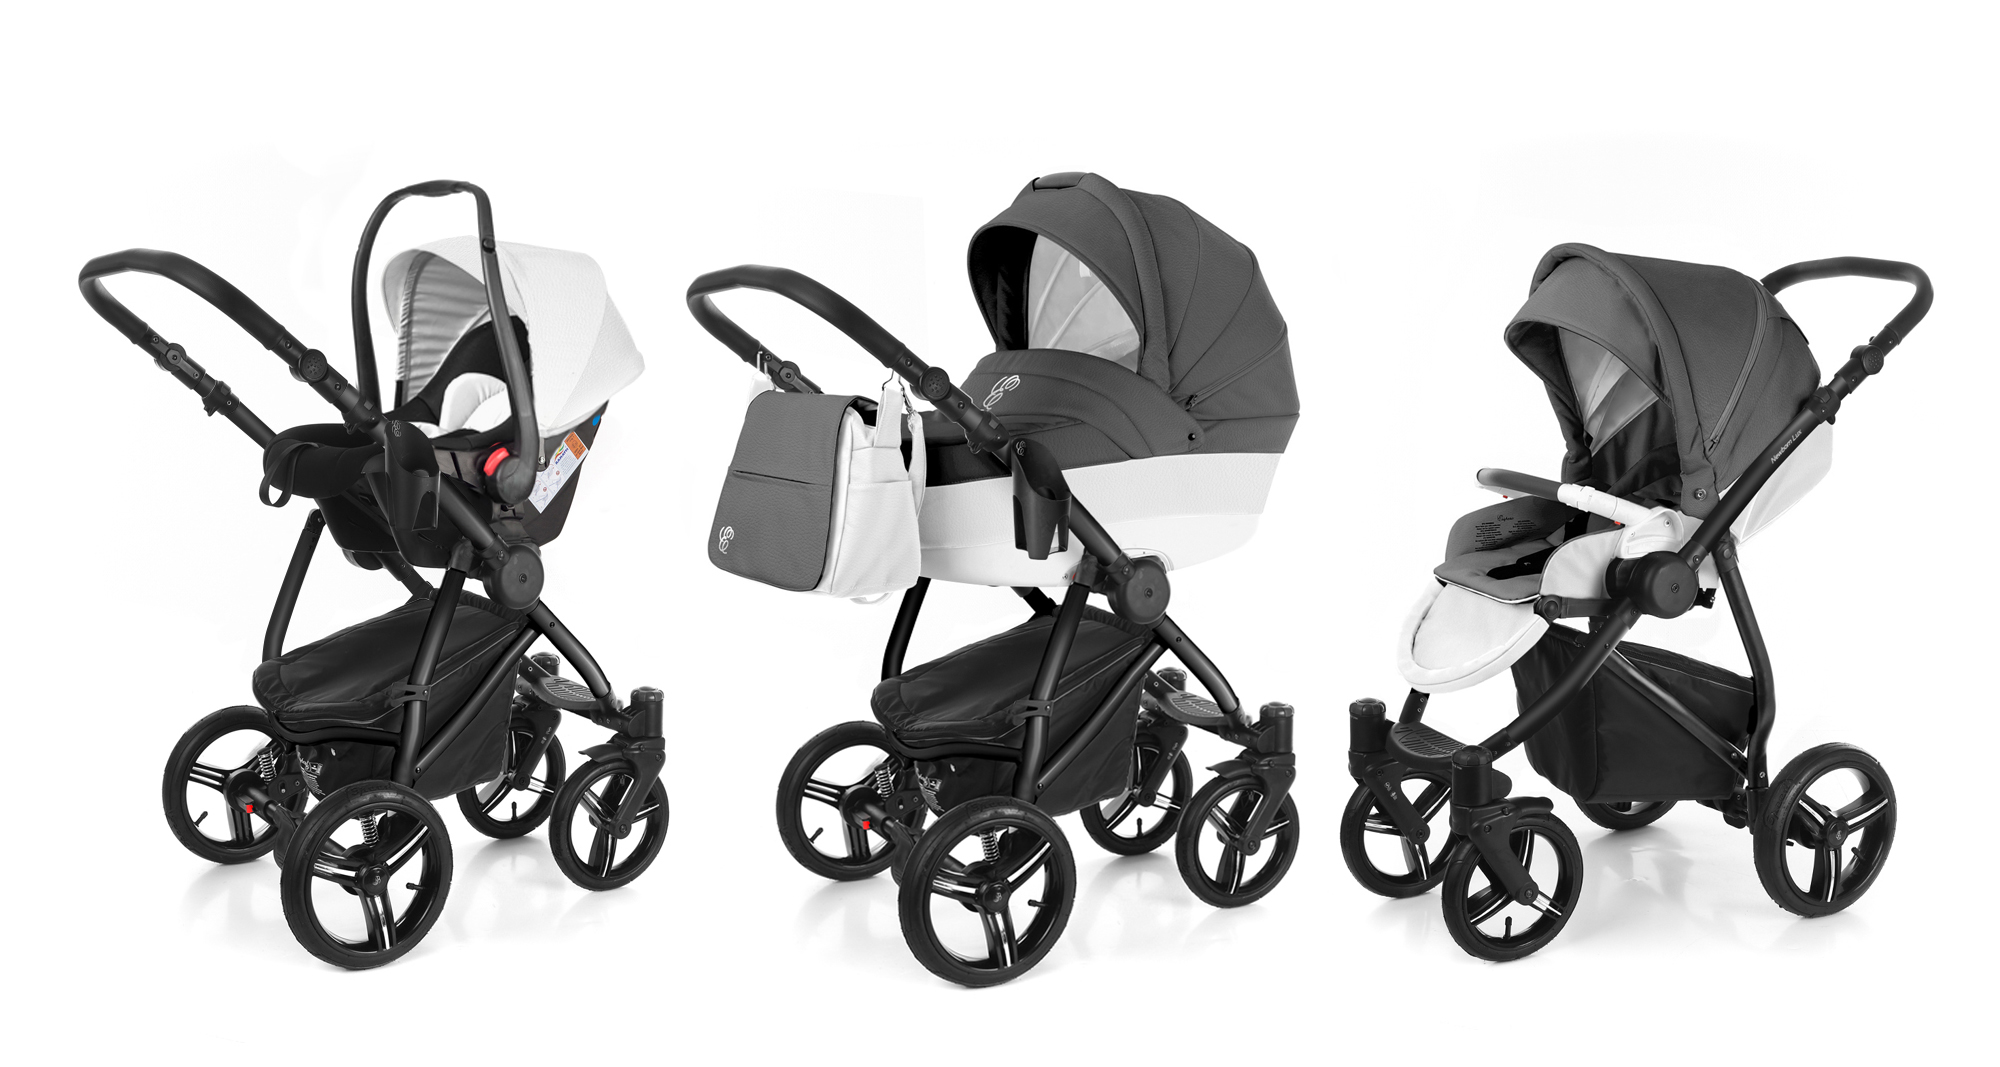 Коляска 3 в 1 Esspero Grand Newborn Lux (шасси Black). Фото N6